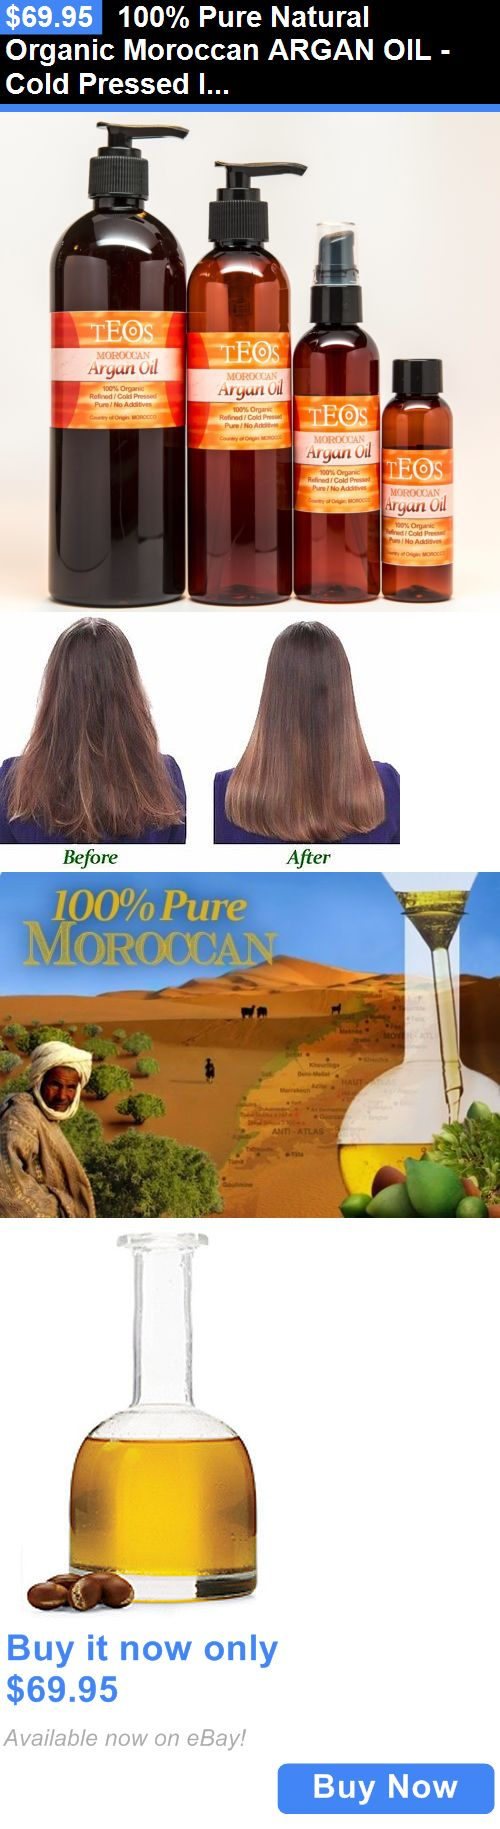 Relaxers and Straightening Prod: 100% Pure Natural Organic Moroccan Argan Oil -Cold Pressed Imported From Morocco BUY IT NOW ONLY: $69.95